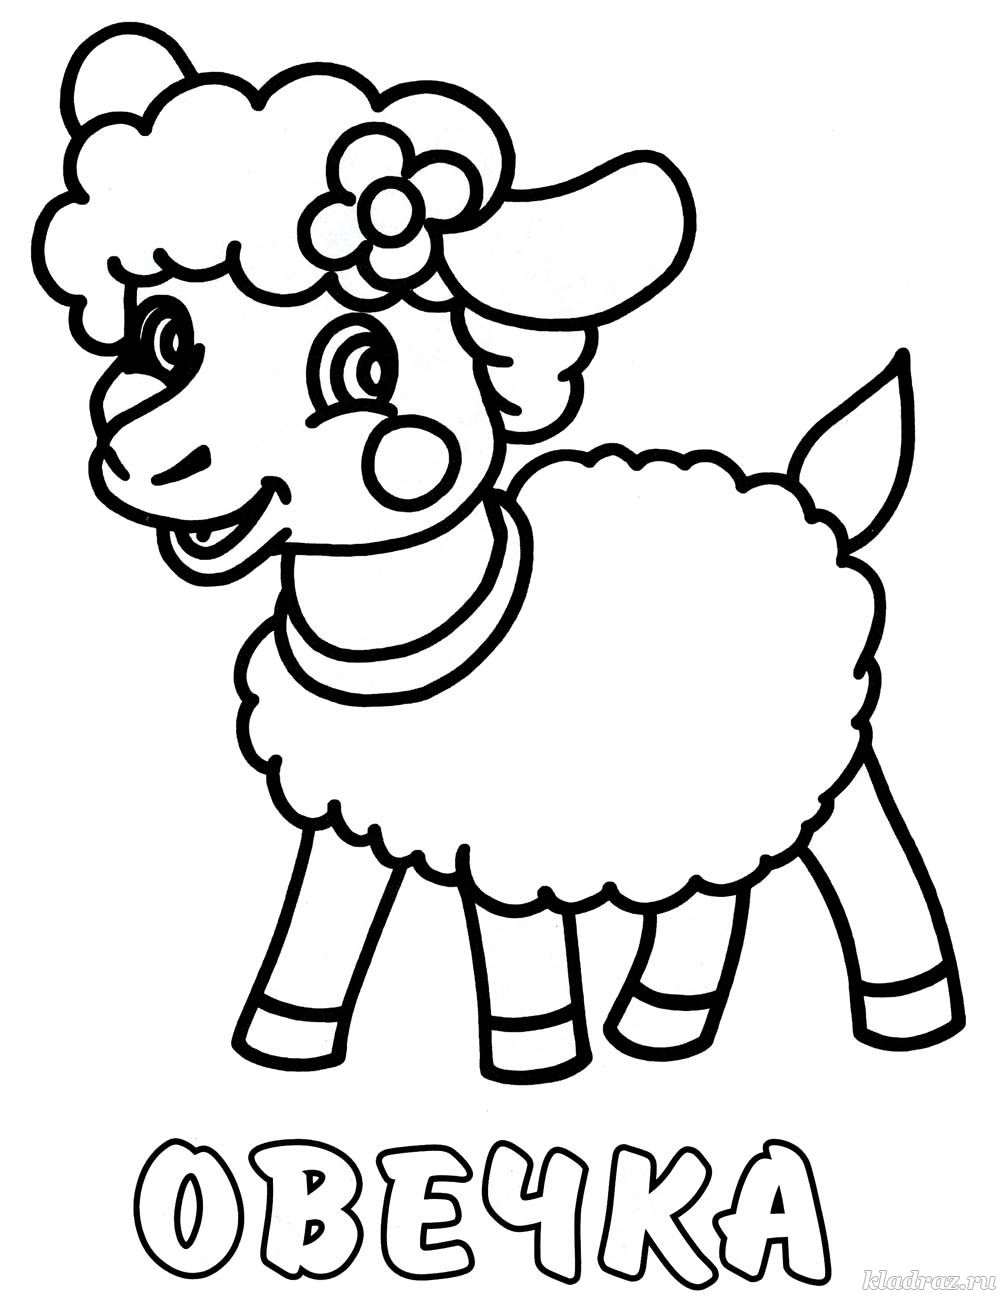 Horse Stable Clip Art additionally Index furthermore Free Farm Animal Clipart Black And White also Hand Made Flower Vase Coloring Page additionally 2806. on sheep barn